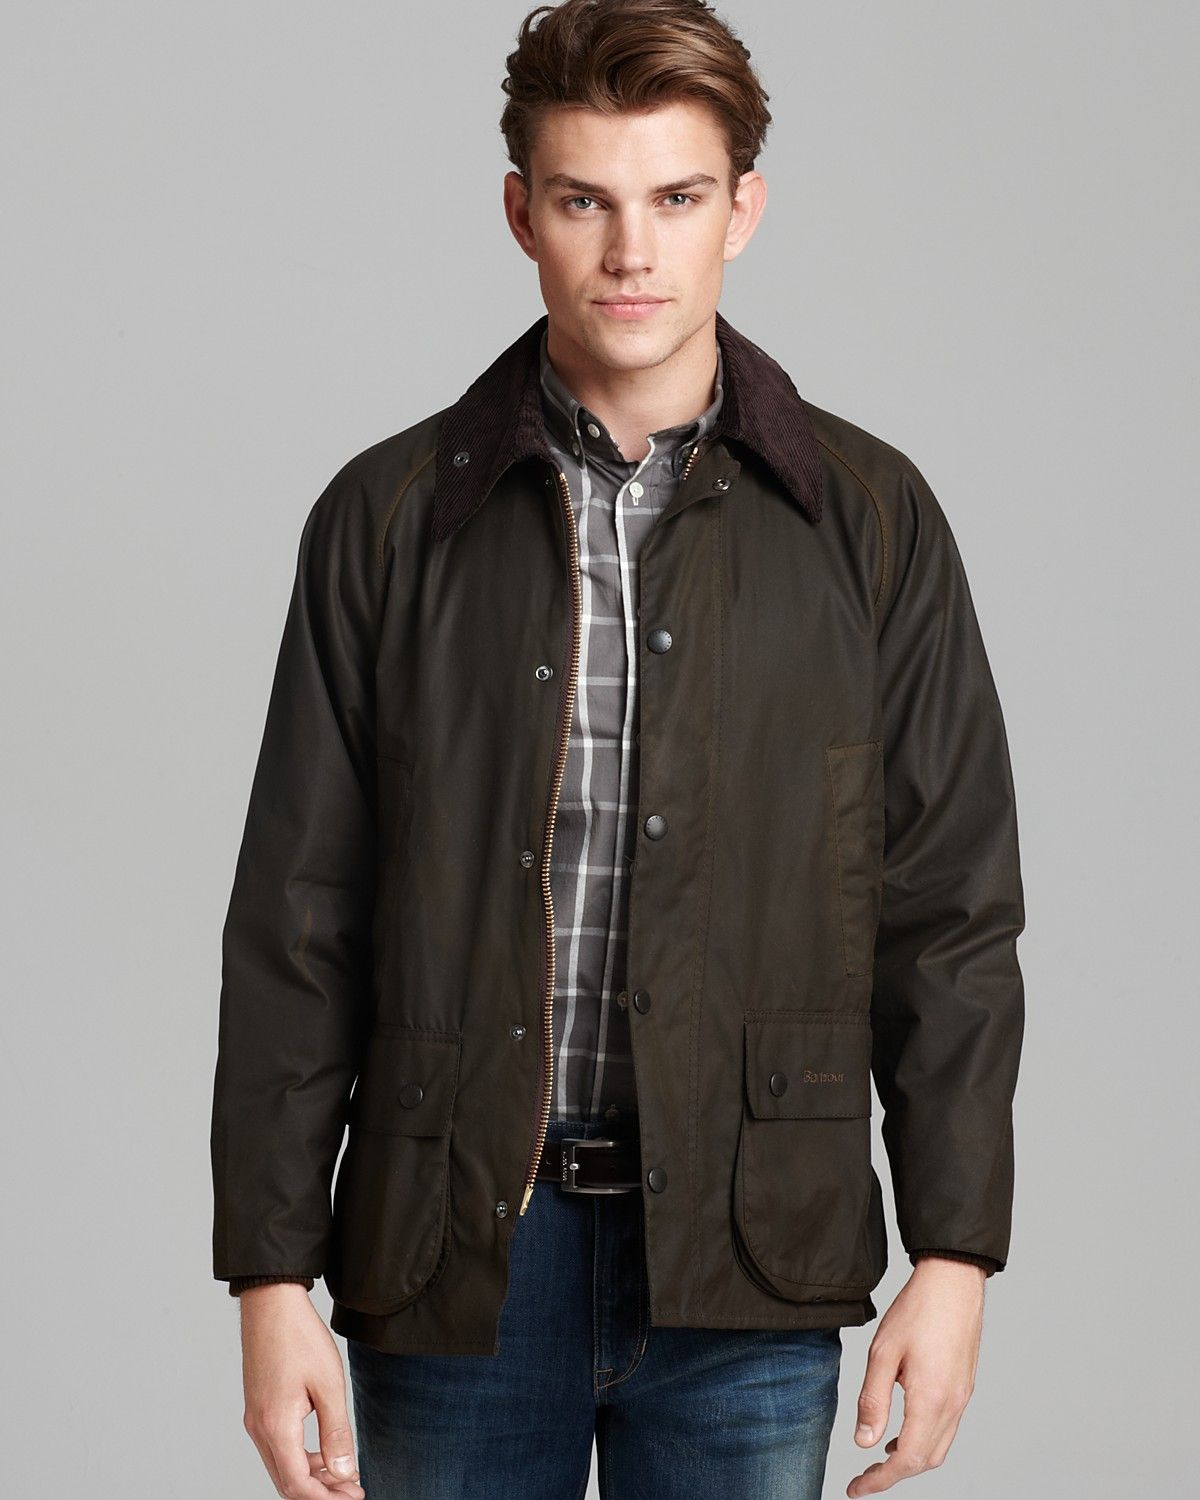 Classic Bedale Waxed Cotton Jacket Style Waxed Cotton